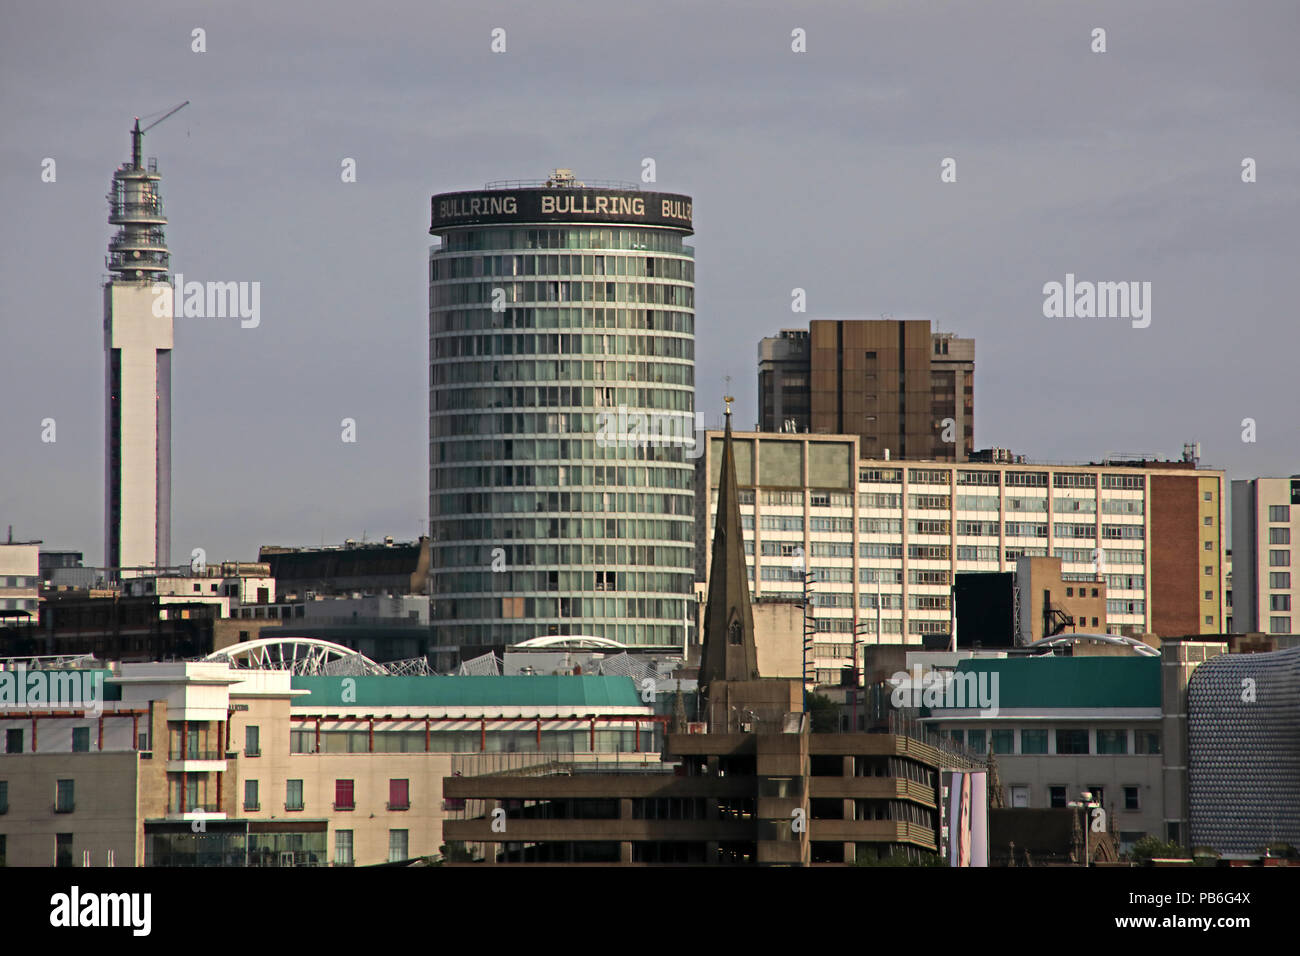 @HotpixUK,GoTonySmith,Panoramic,Skyline,England,UK,Midlands,pano,Bullring,Selfridges,commerce,commercial,retail,second,city,second city,GB,great Britain,buildings,towers,offices,City Centre Birmingham,architecture,busy,landmarks,blocks,wide,angle,wide angle,business,business centre,Rotunda,Bull Ring,BT,BT Tower,central,Midland,urban,sky,line